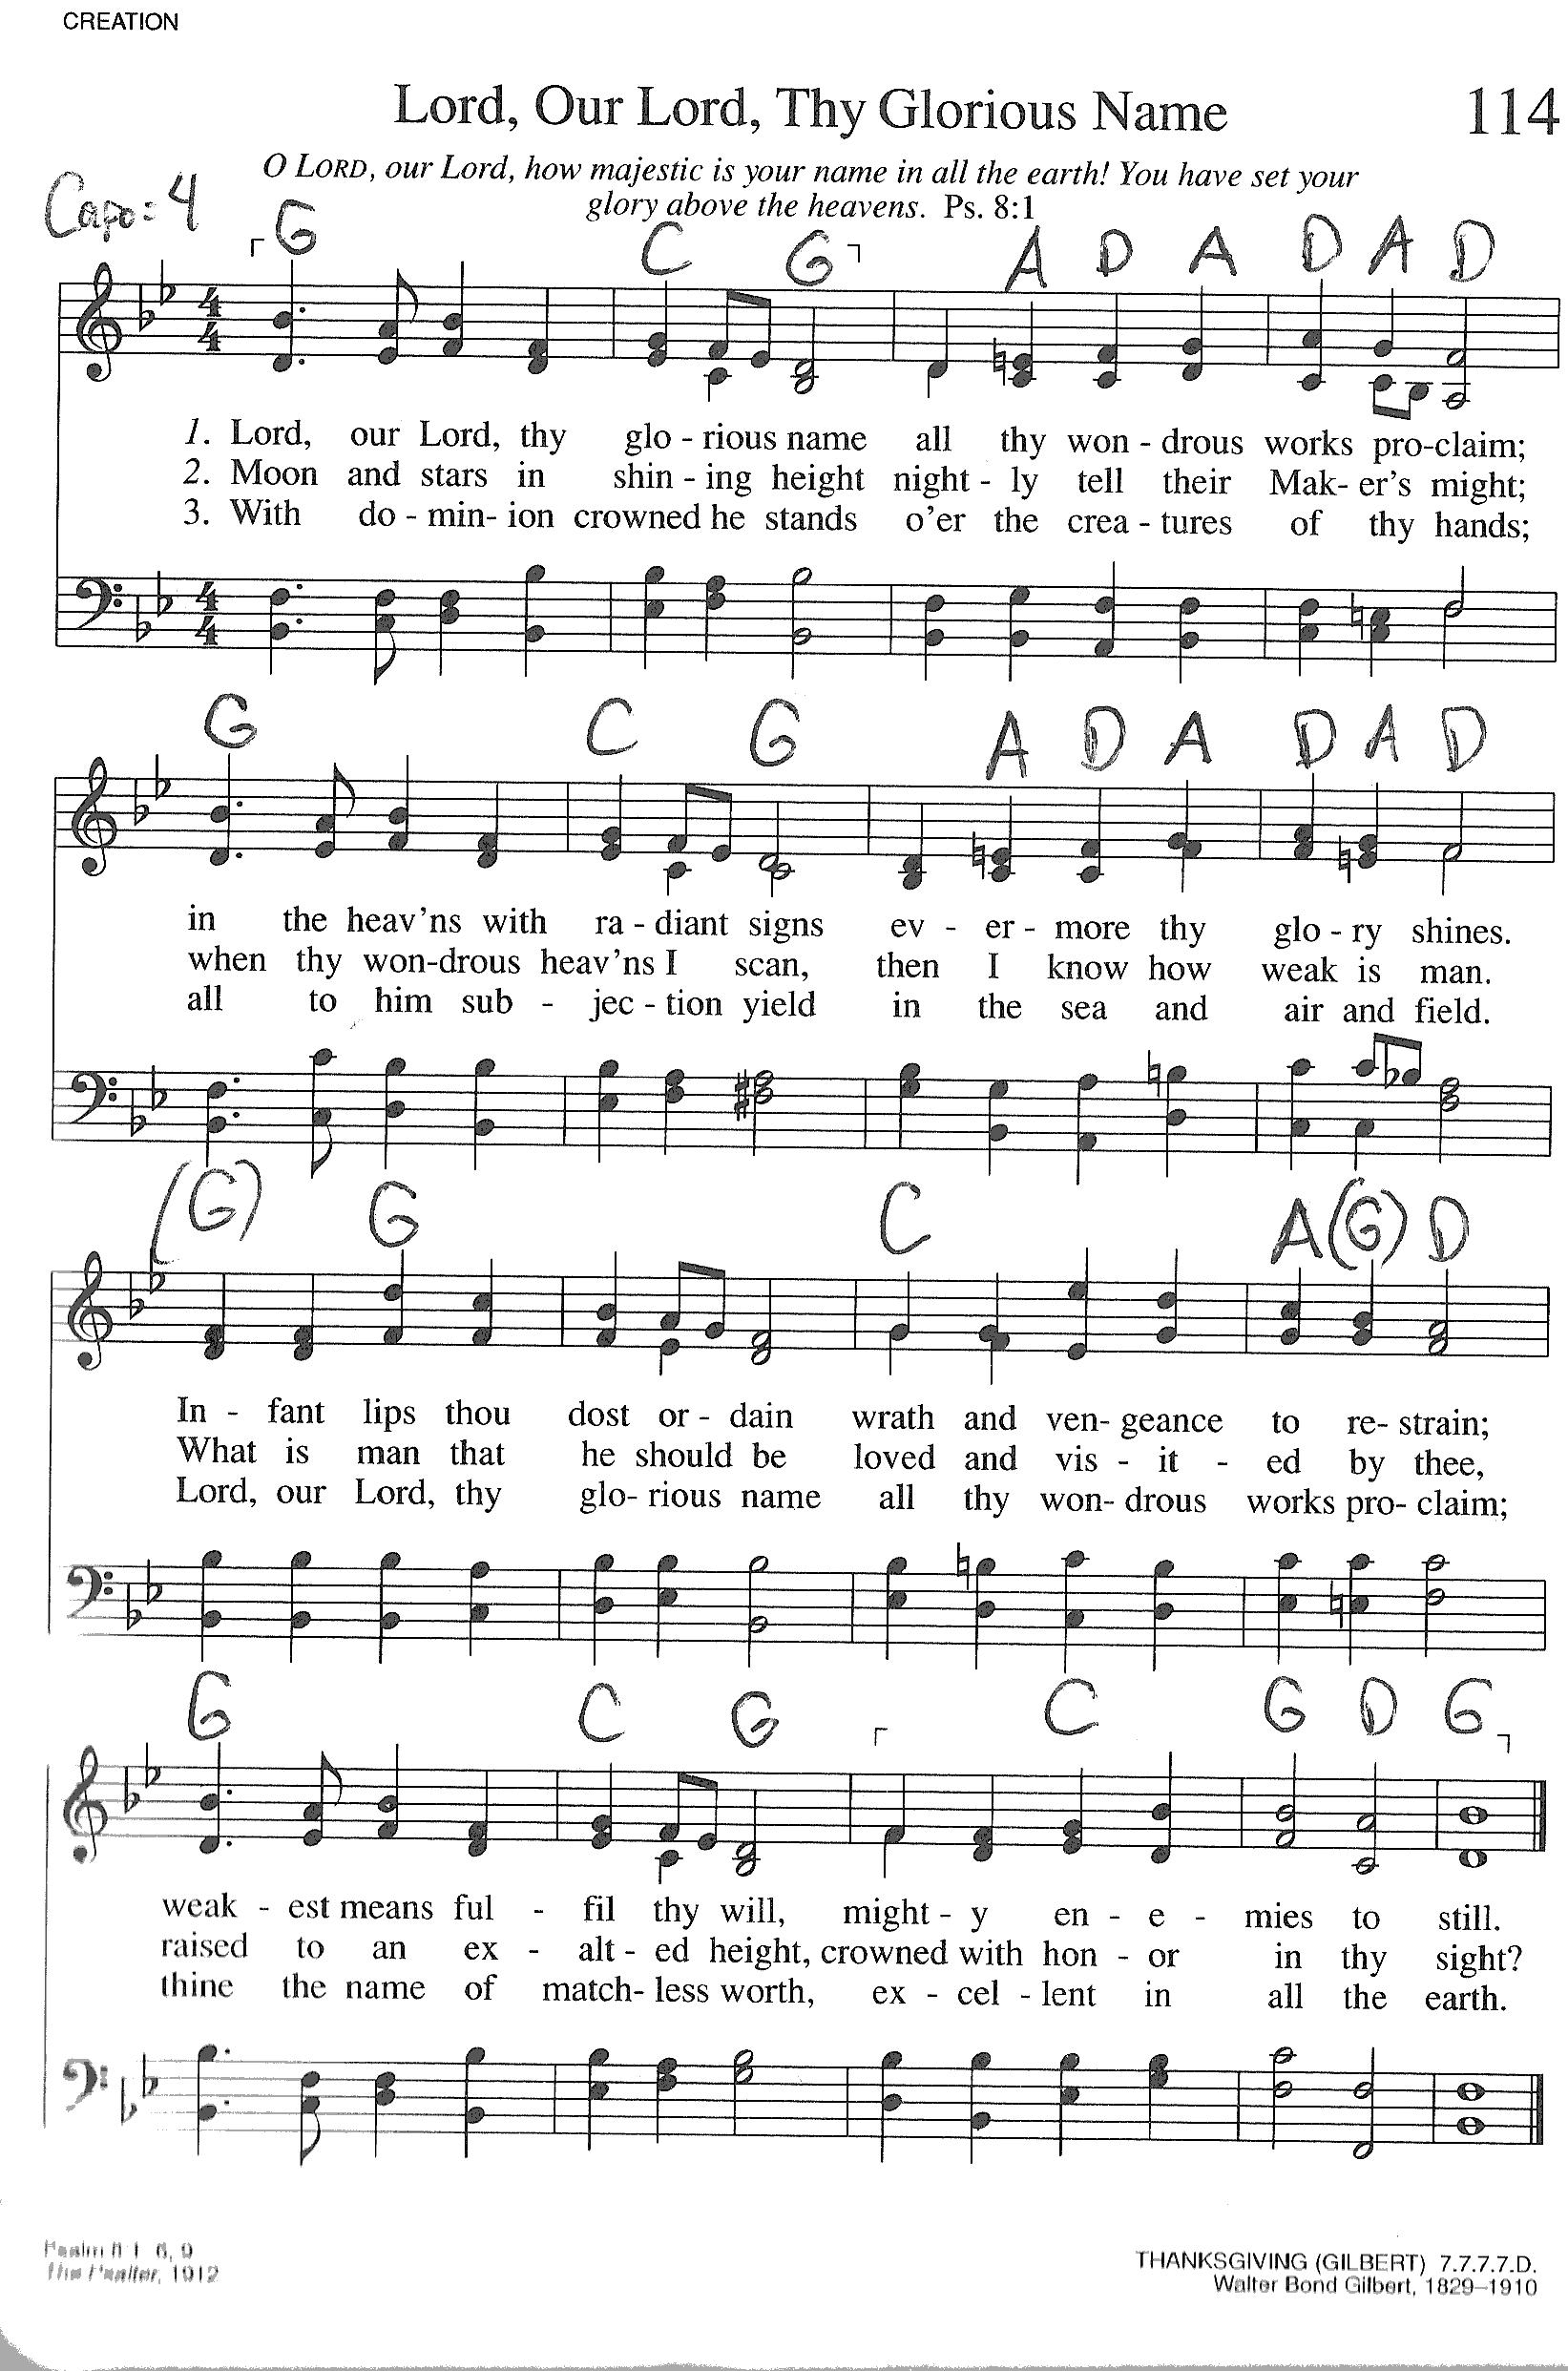 Index of publicdocstrinityhymnaltrinity hymnal guitar chords 114 lord our lord hexwebz Images